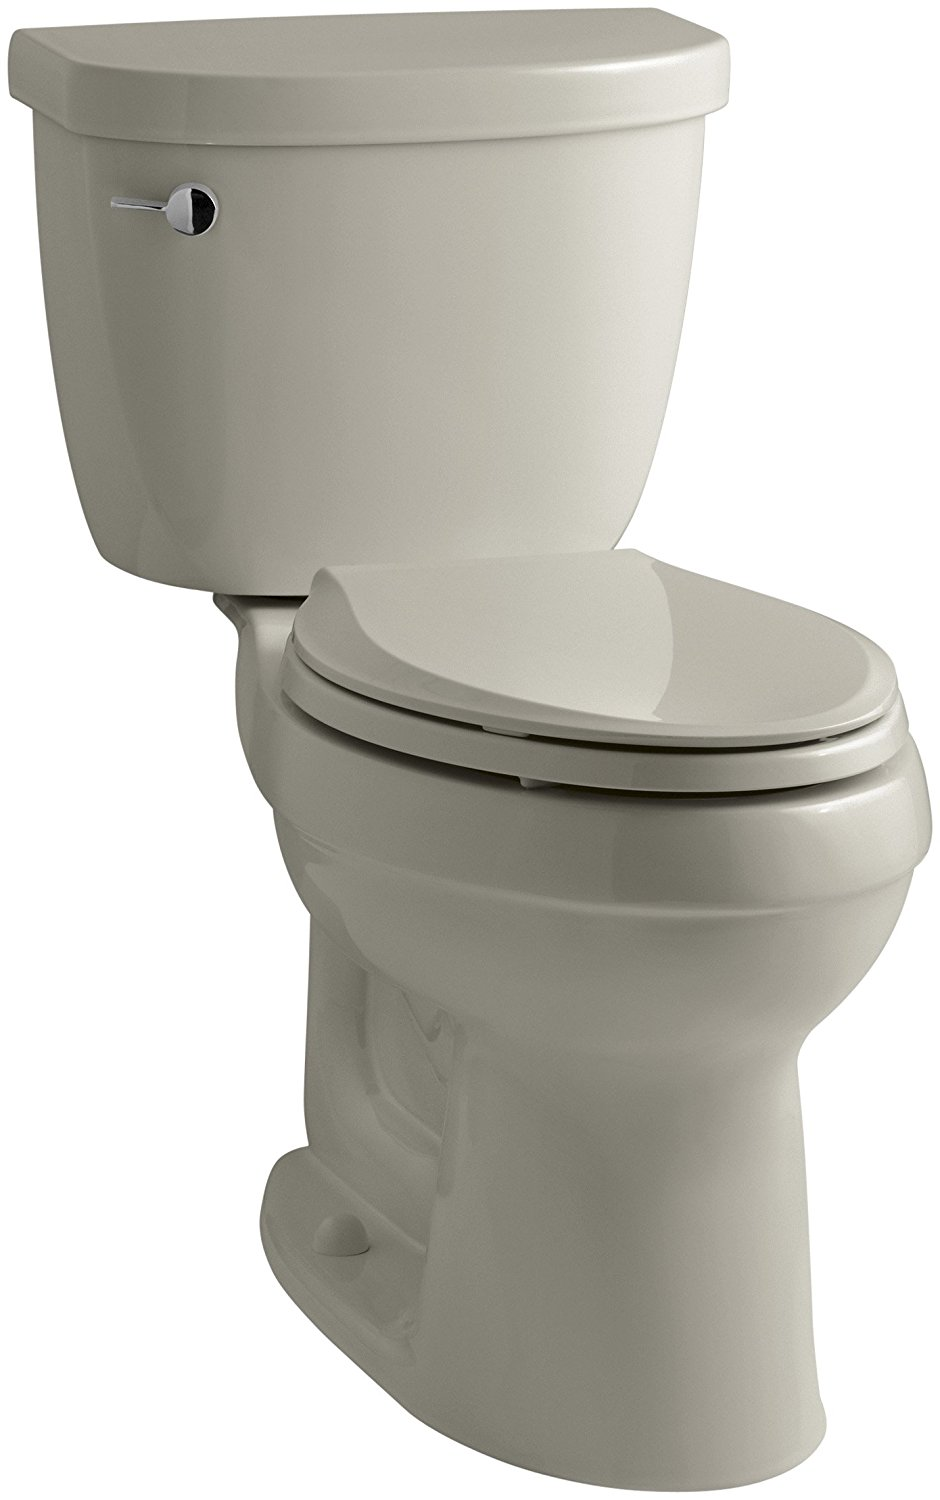 KOHLER K-3609-G9 Cimarron Comfort Height Elongated 1.28 gpf Toilet with AquaPiston Technology, Less Seat, Sandbar